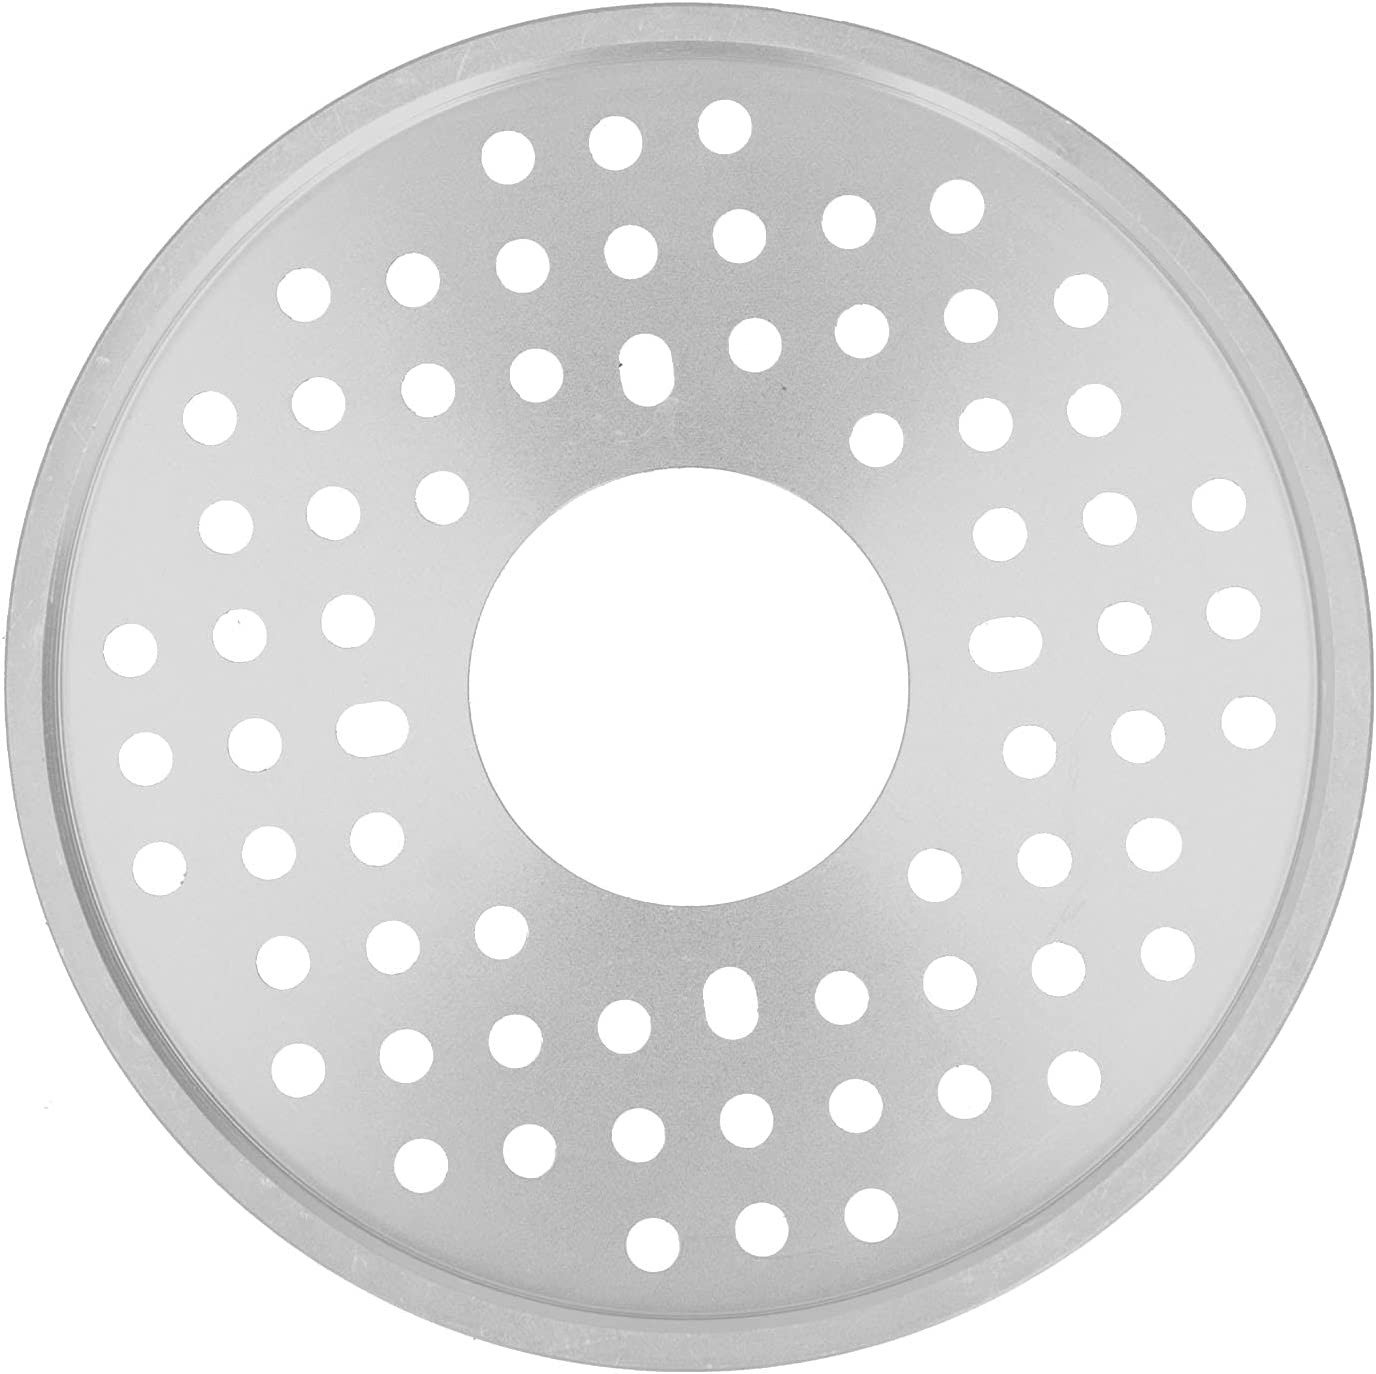 Driven Pulley Aluminum Alloy Low Noise Wheel Sale special price 32mm Aperture Drive OFFicial mail order